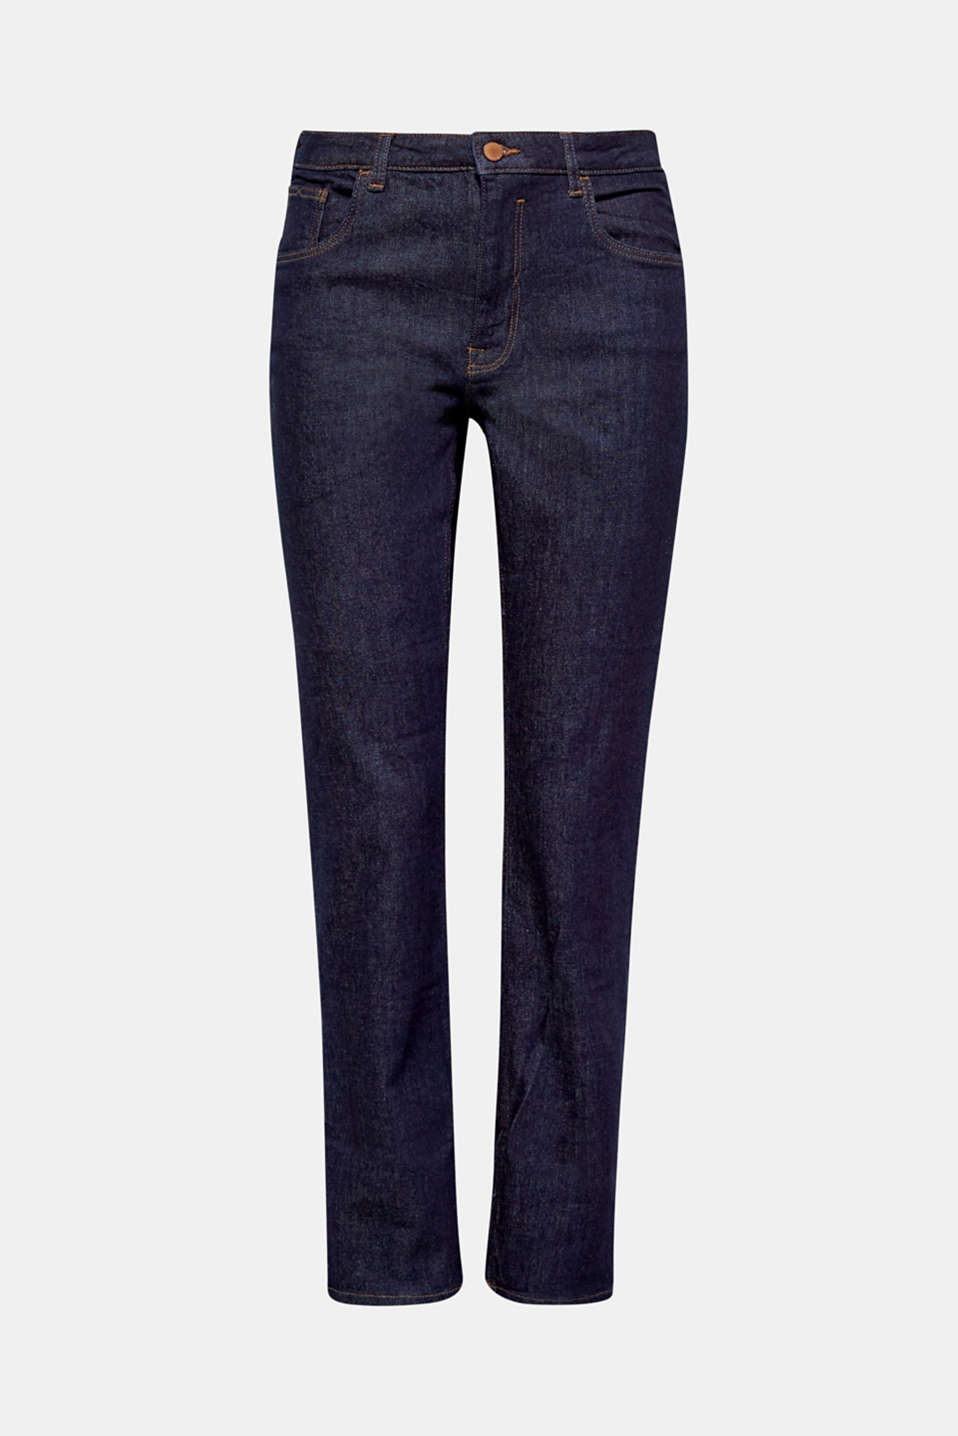 These high-rise jeans in a dark blue denim with fair organic cotton are clean, stylish and sustainable.